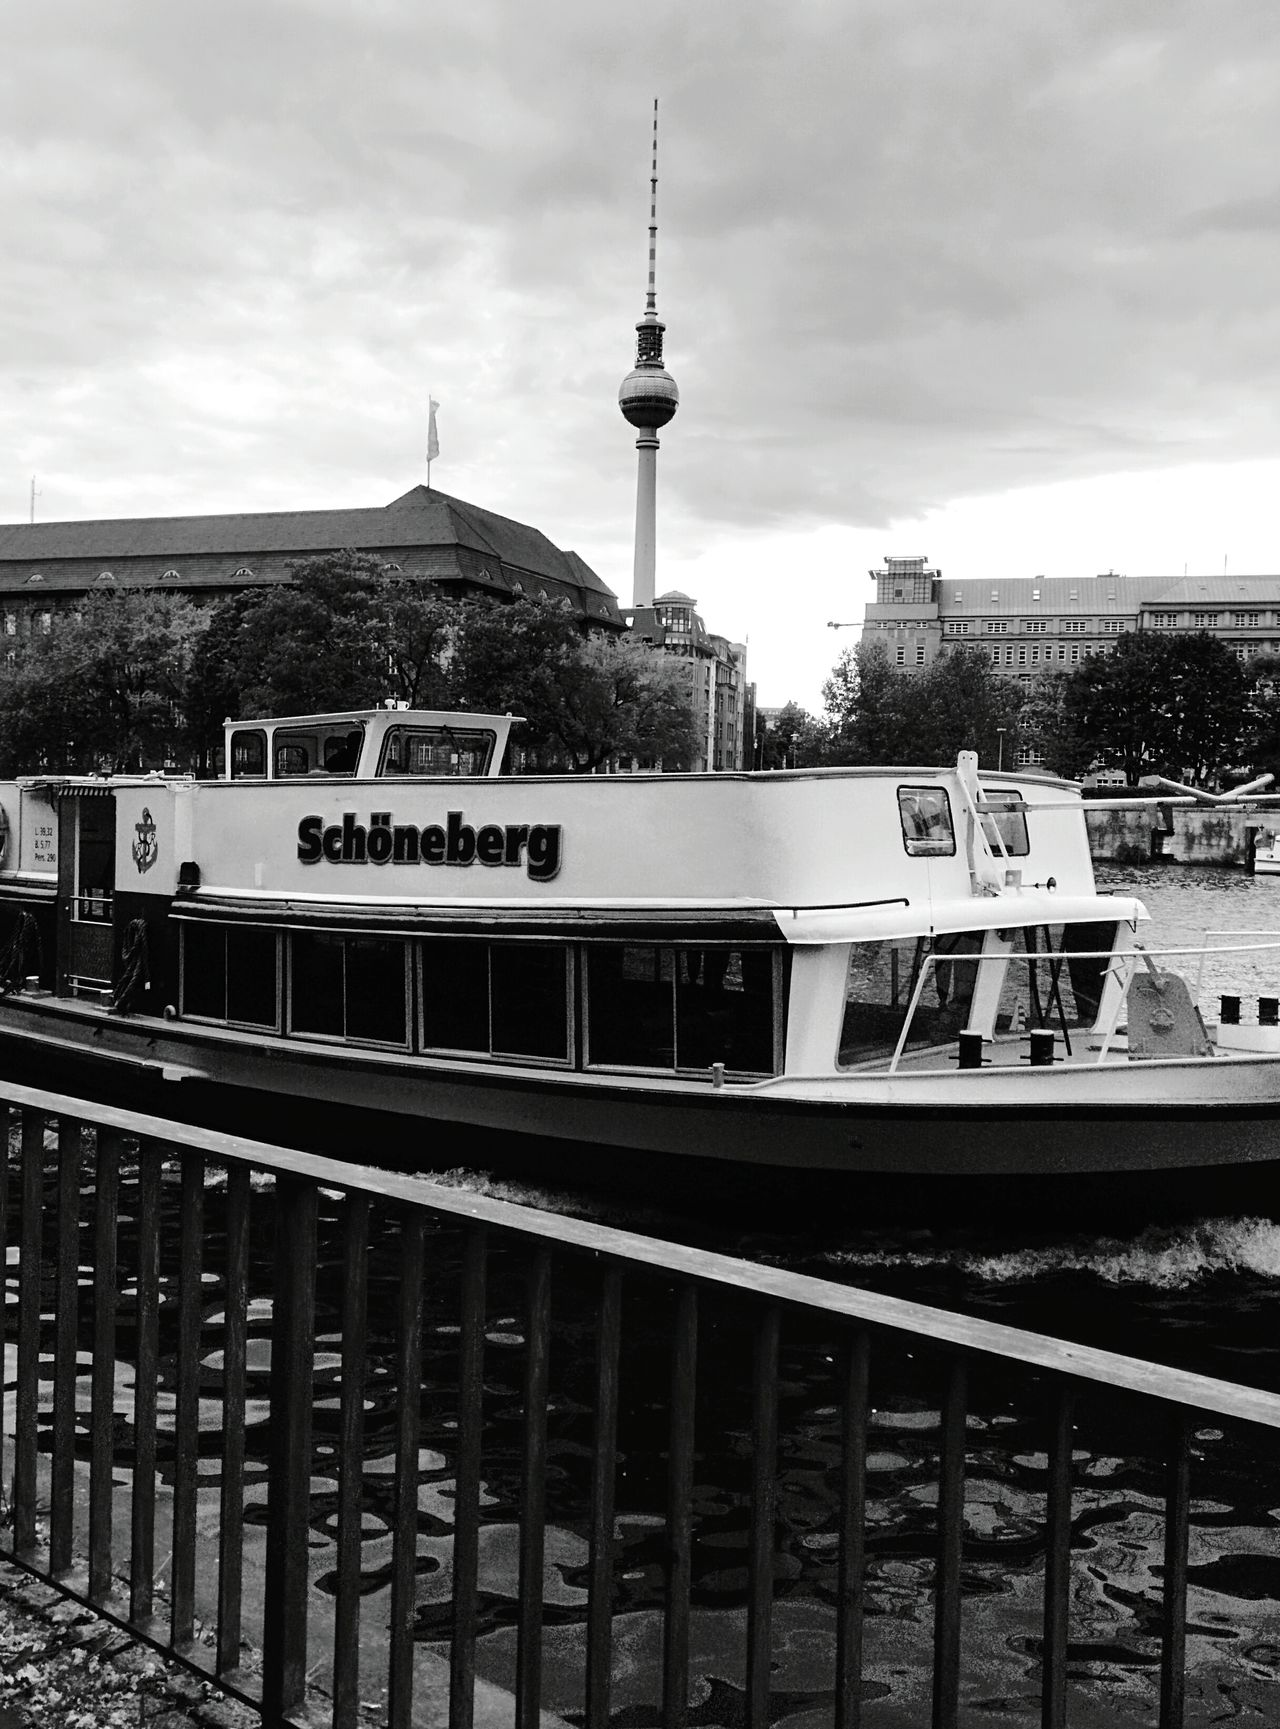 Day 322 - Schöneberg boat Berlin Blackandwhite Boat Tvtower 365florianmski 365project Day322